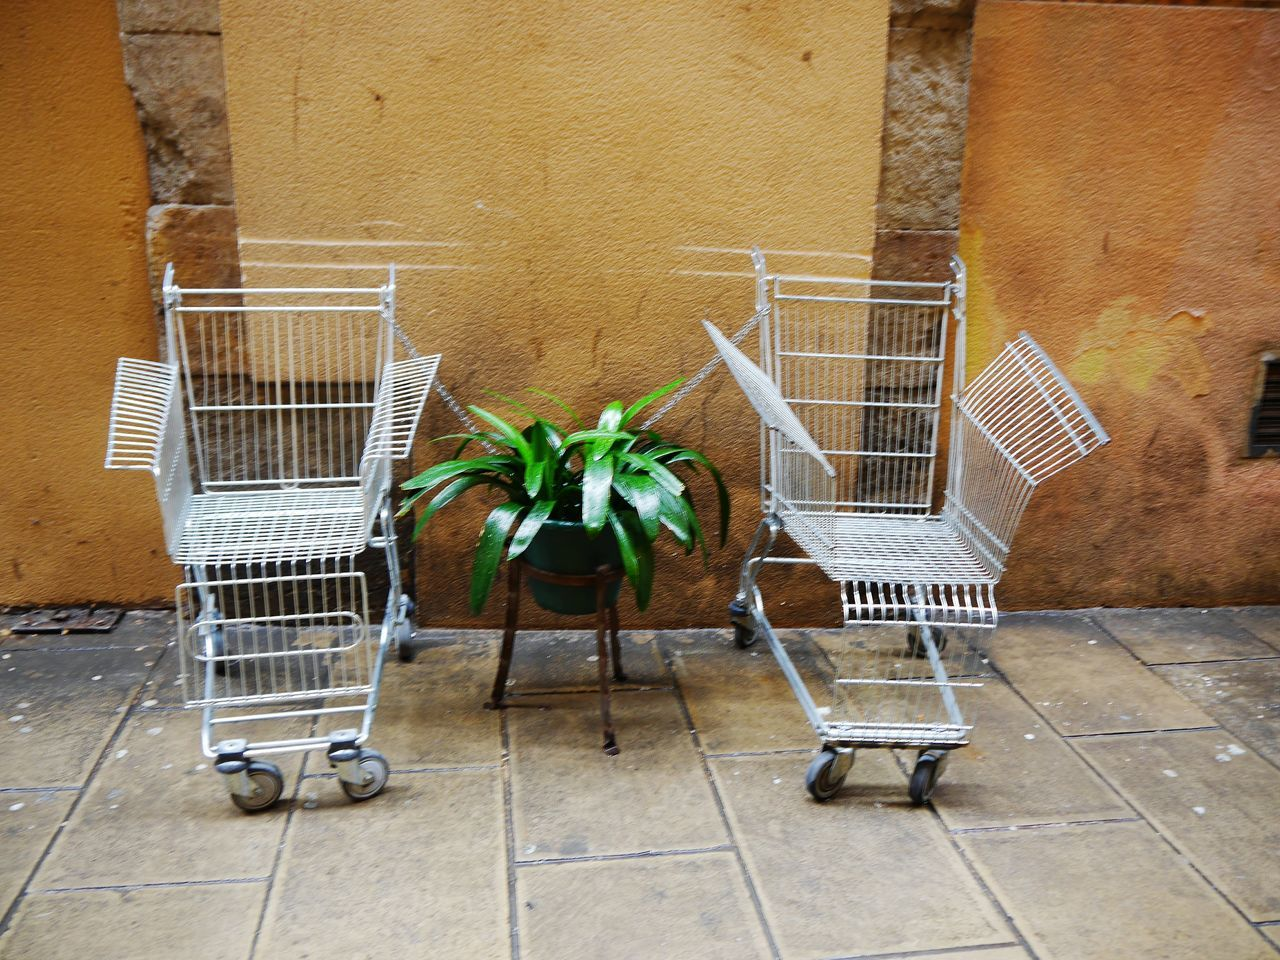 Take two... Shopping Cart Consumerism Chair No People Outdoors Day Full Frame Plant